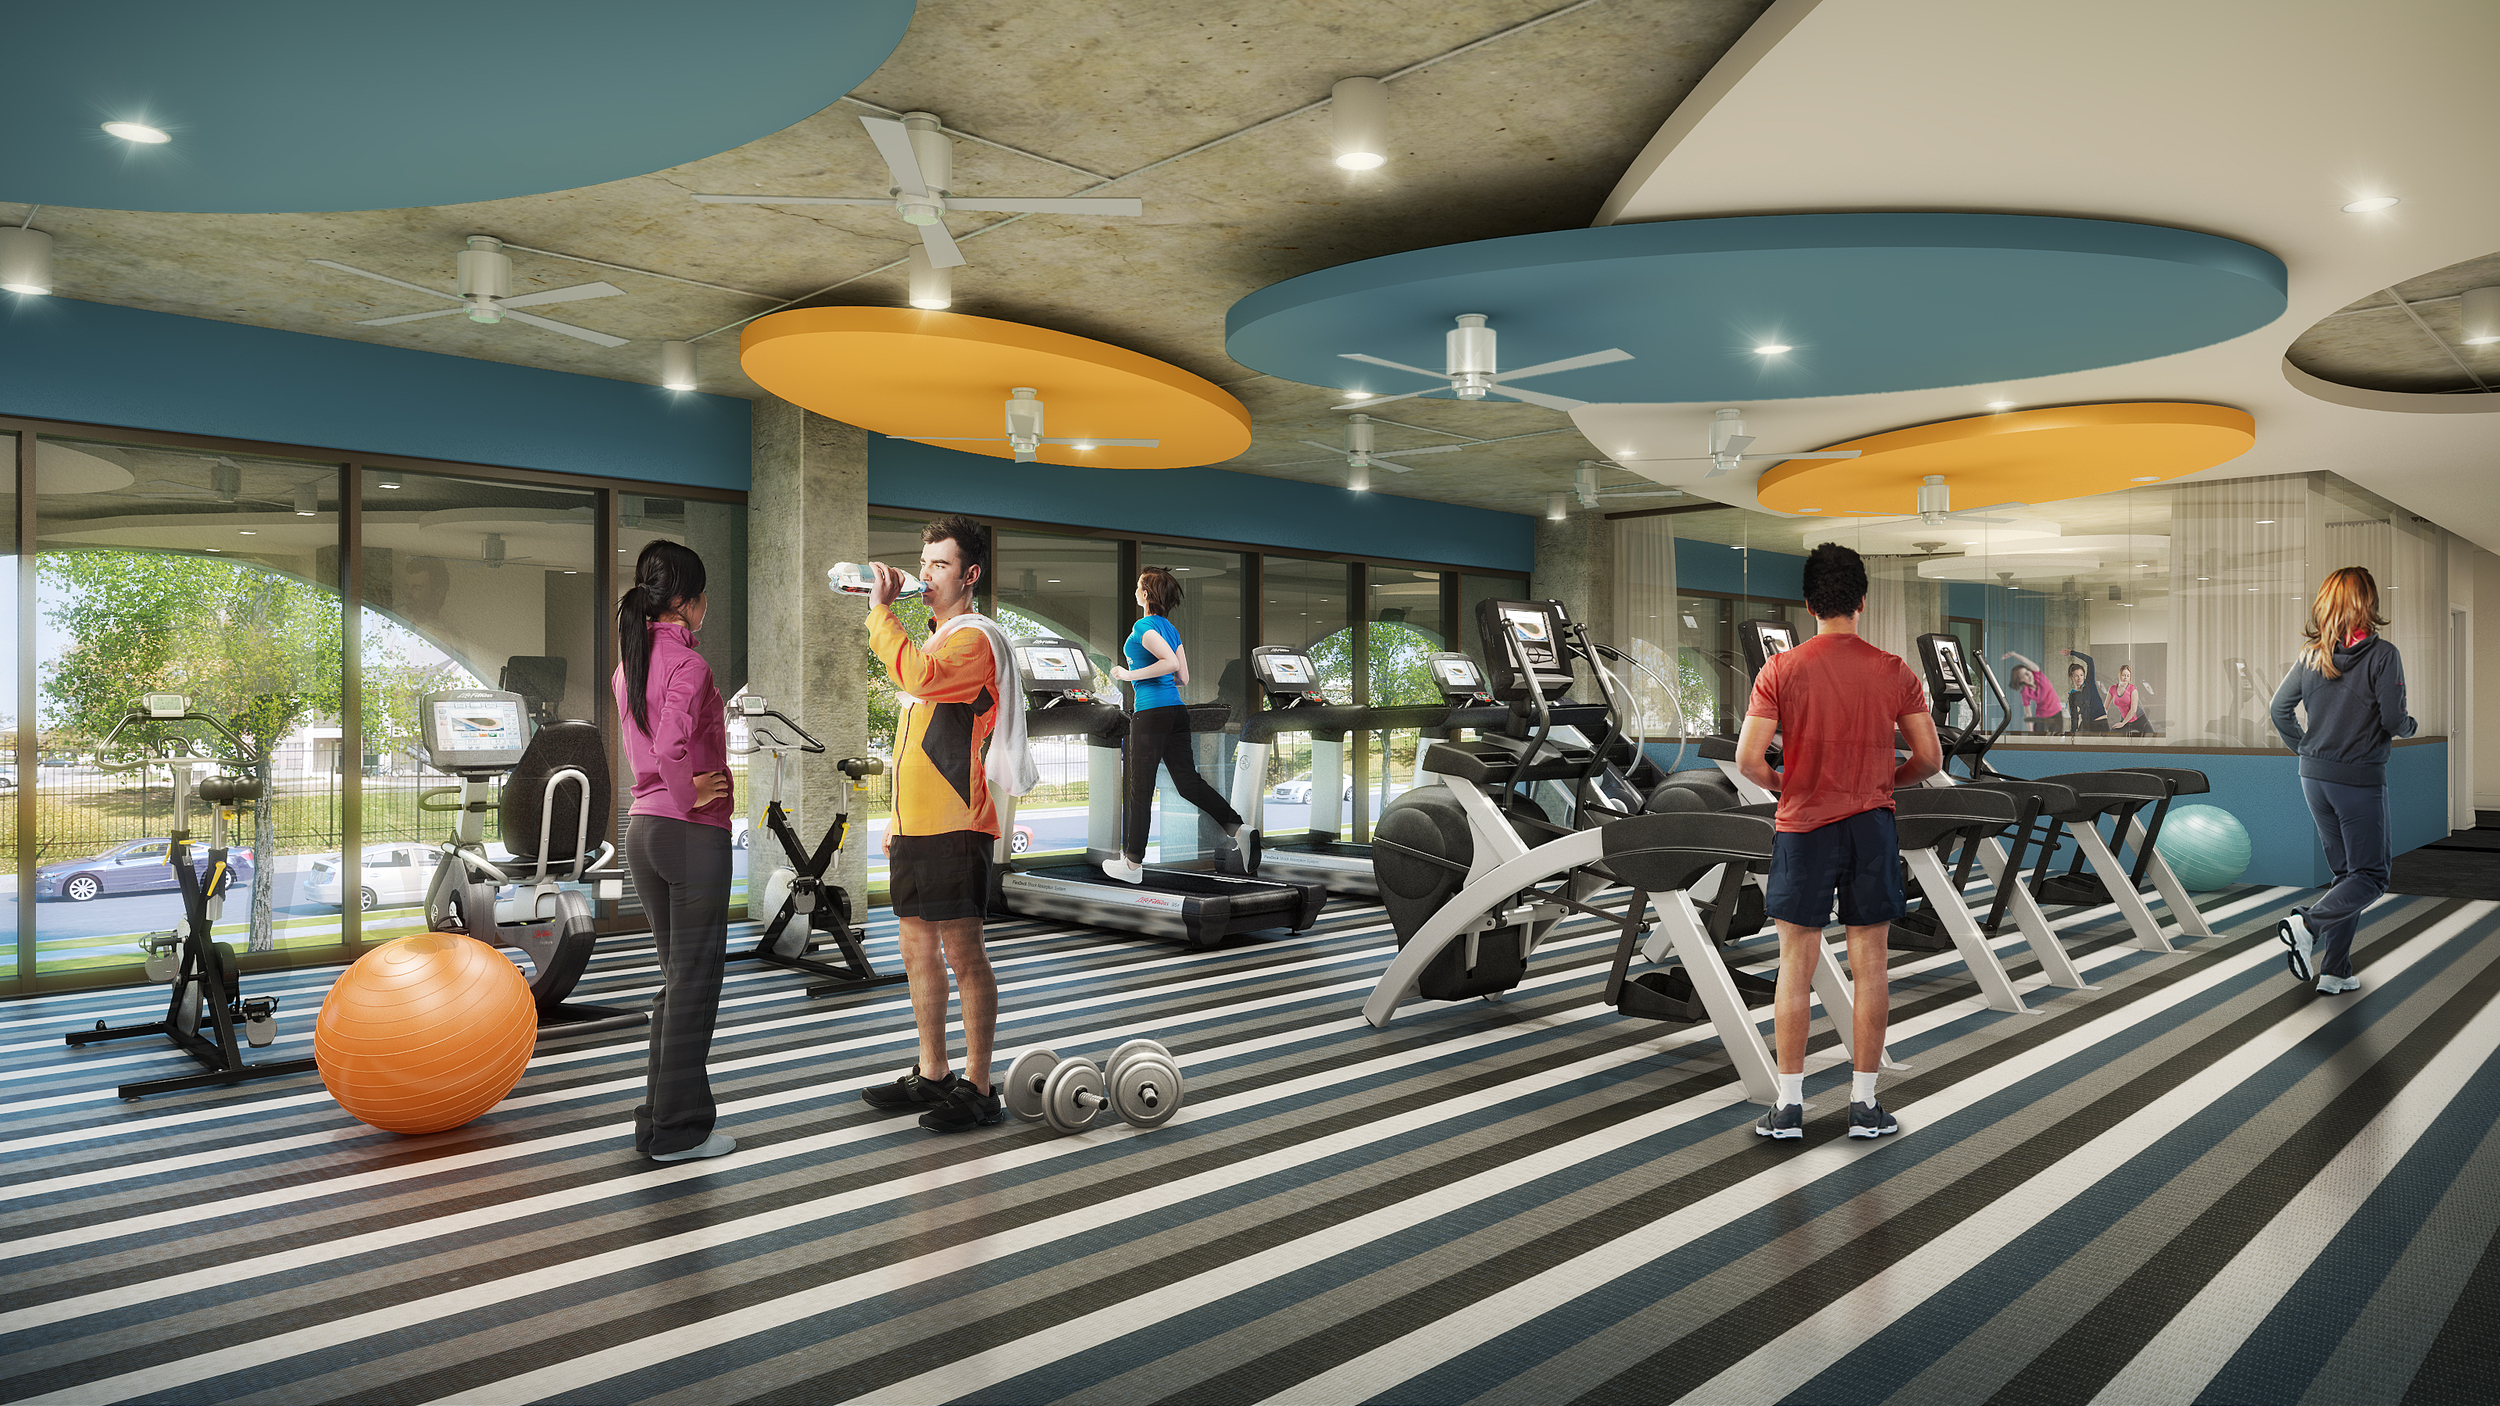 FITNESS CENTER  rendering by cagleart.com